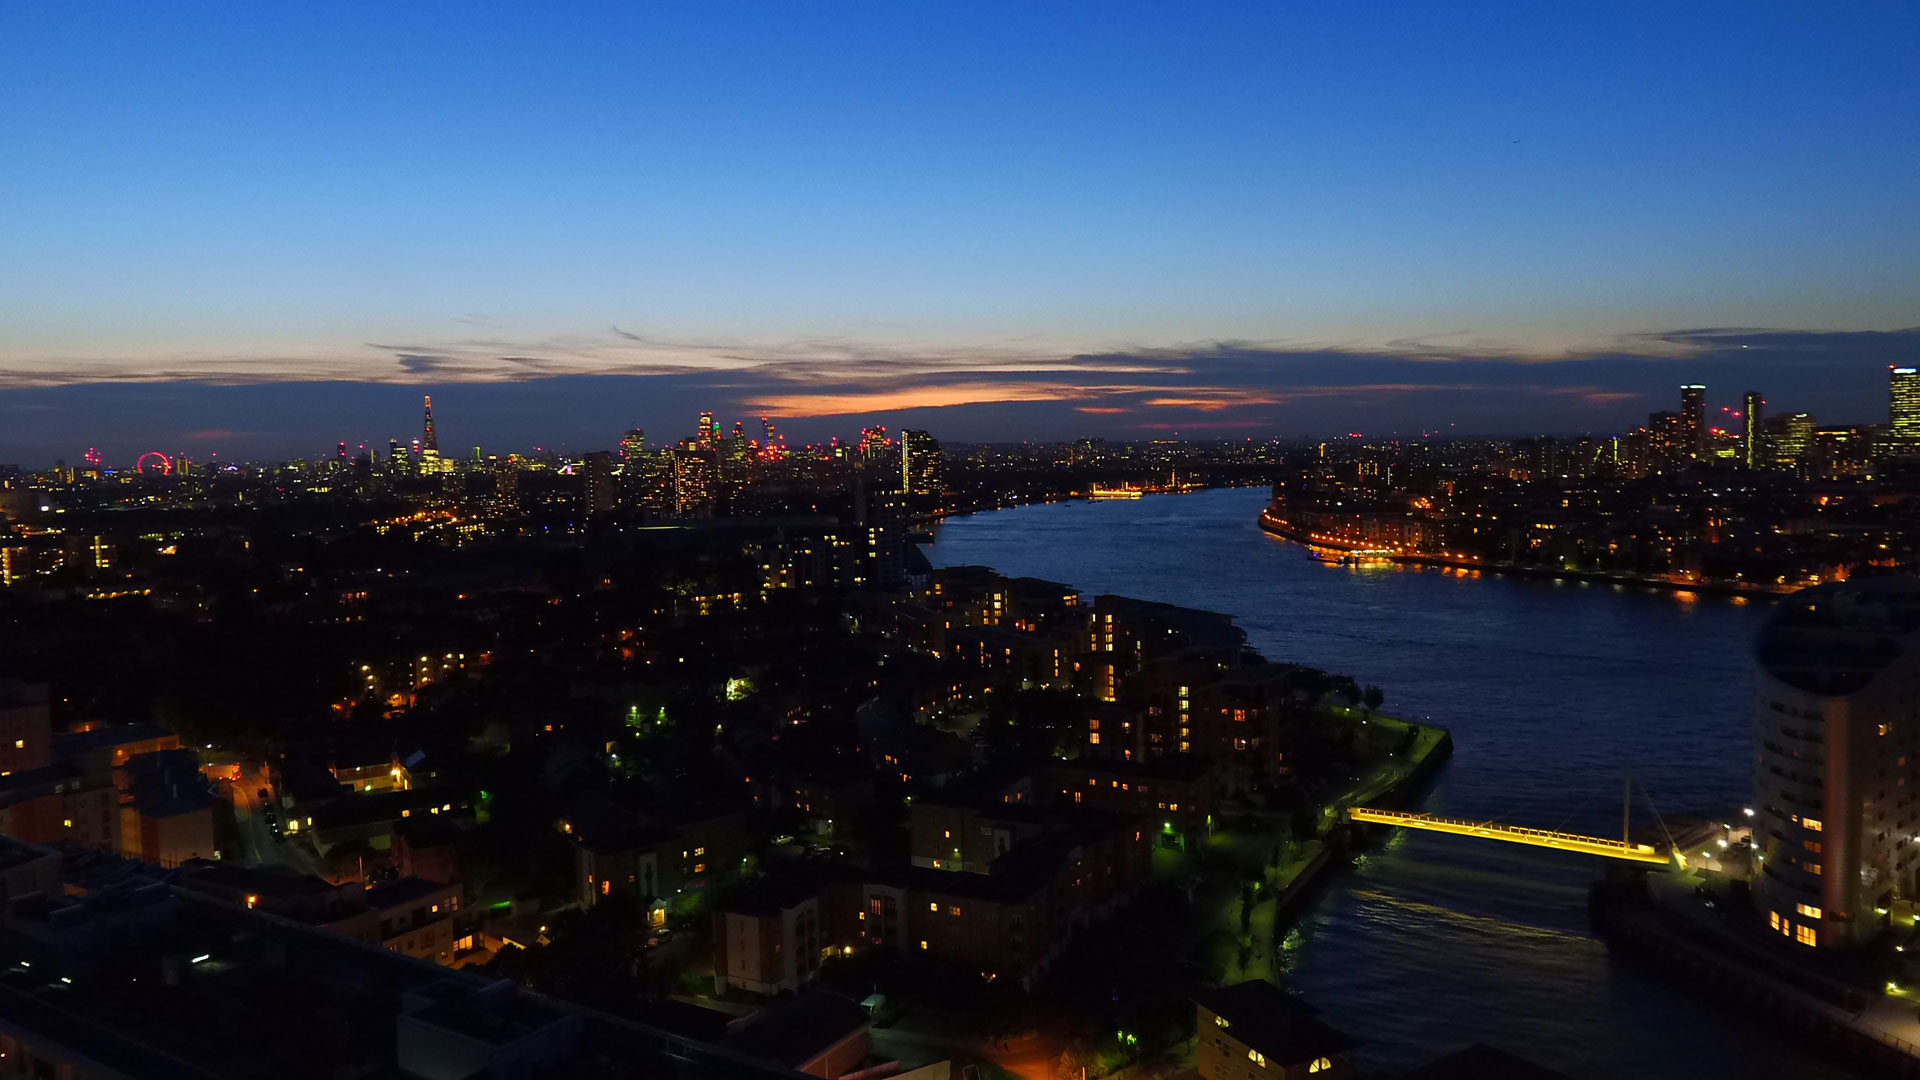 Stunning night time views towards central London with The Shard and the London Eye visible on the horizon.